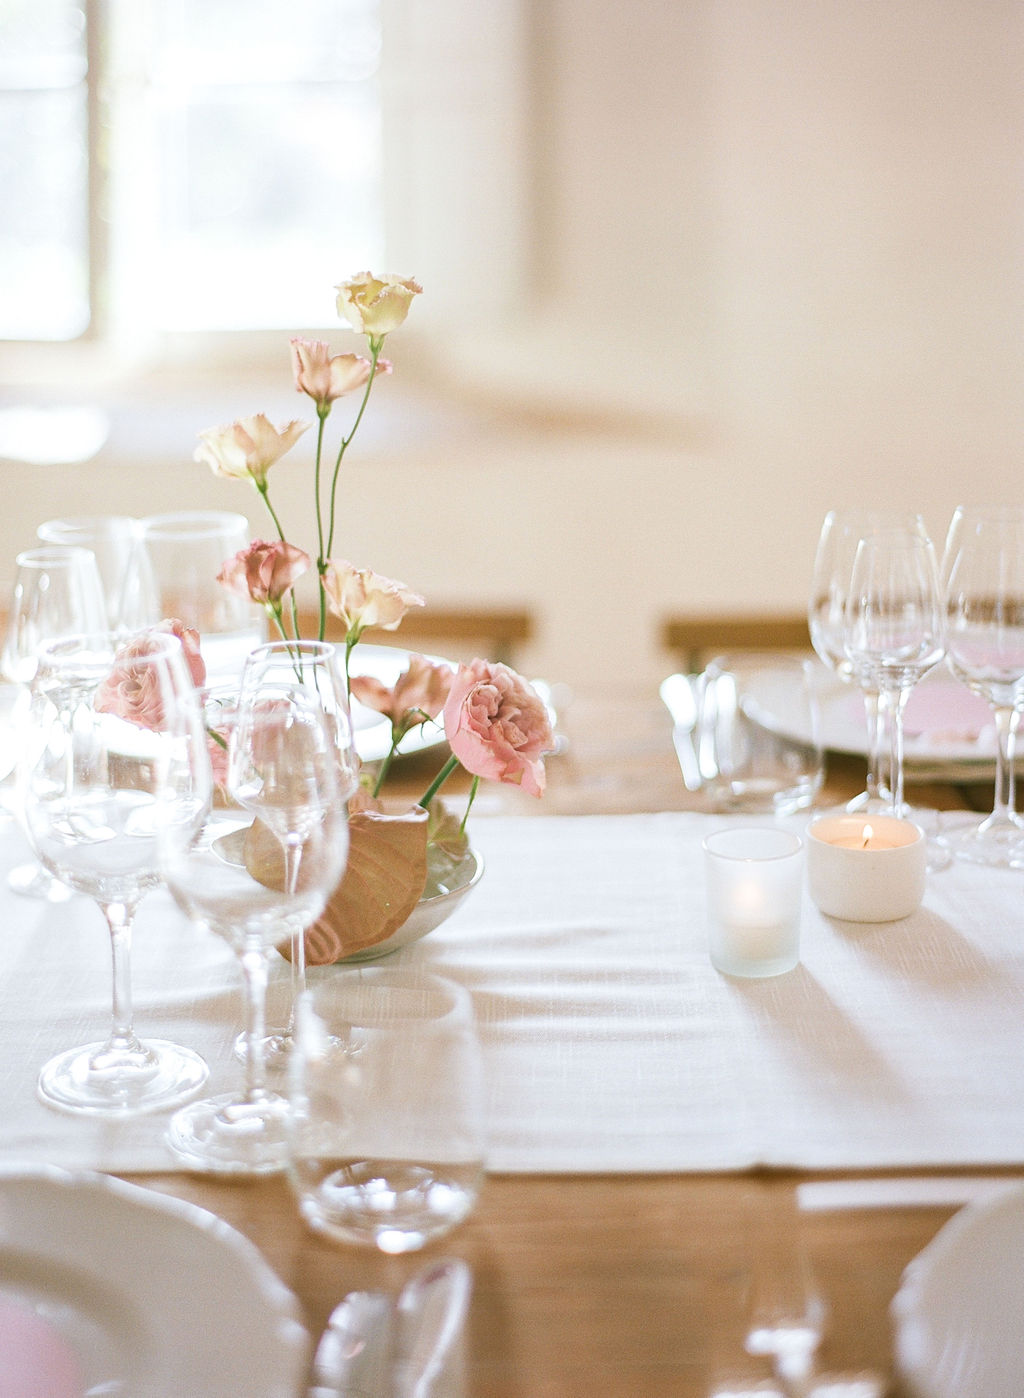 pink roses displayed on rehearsal dinner table